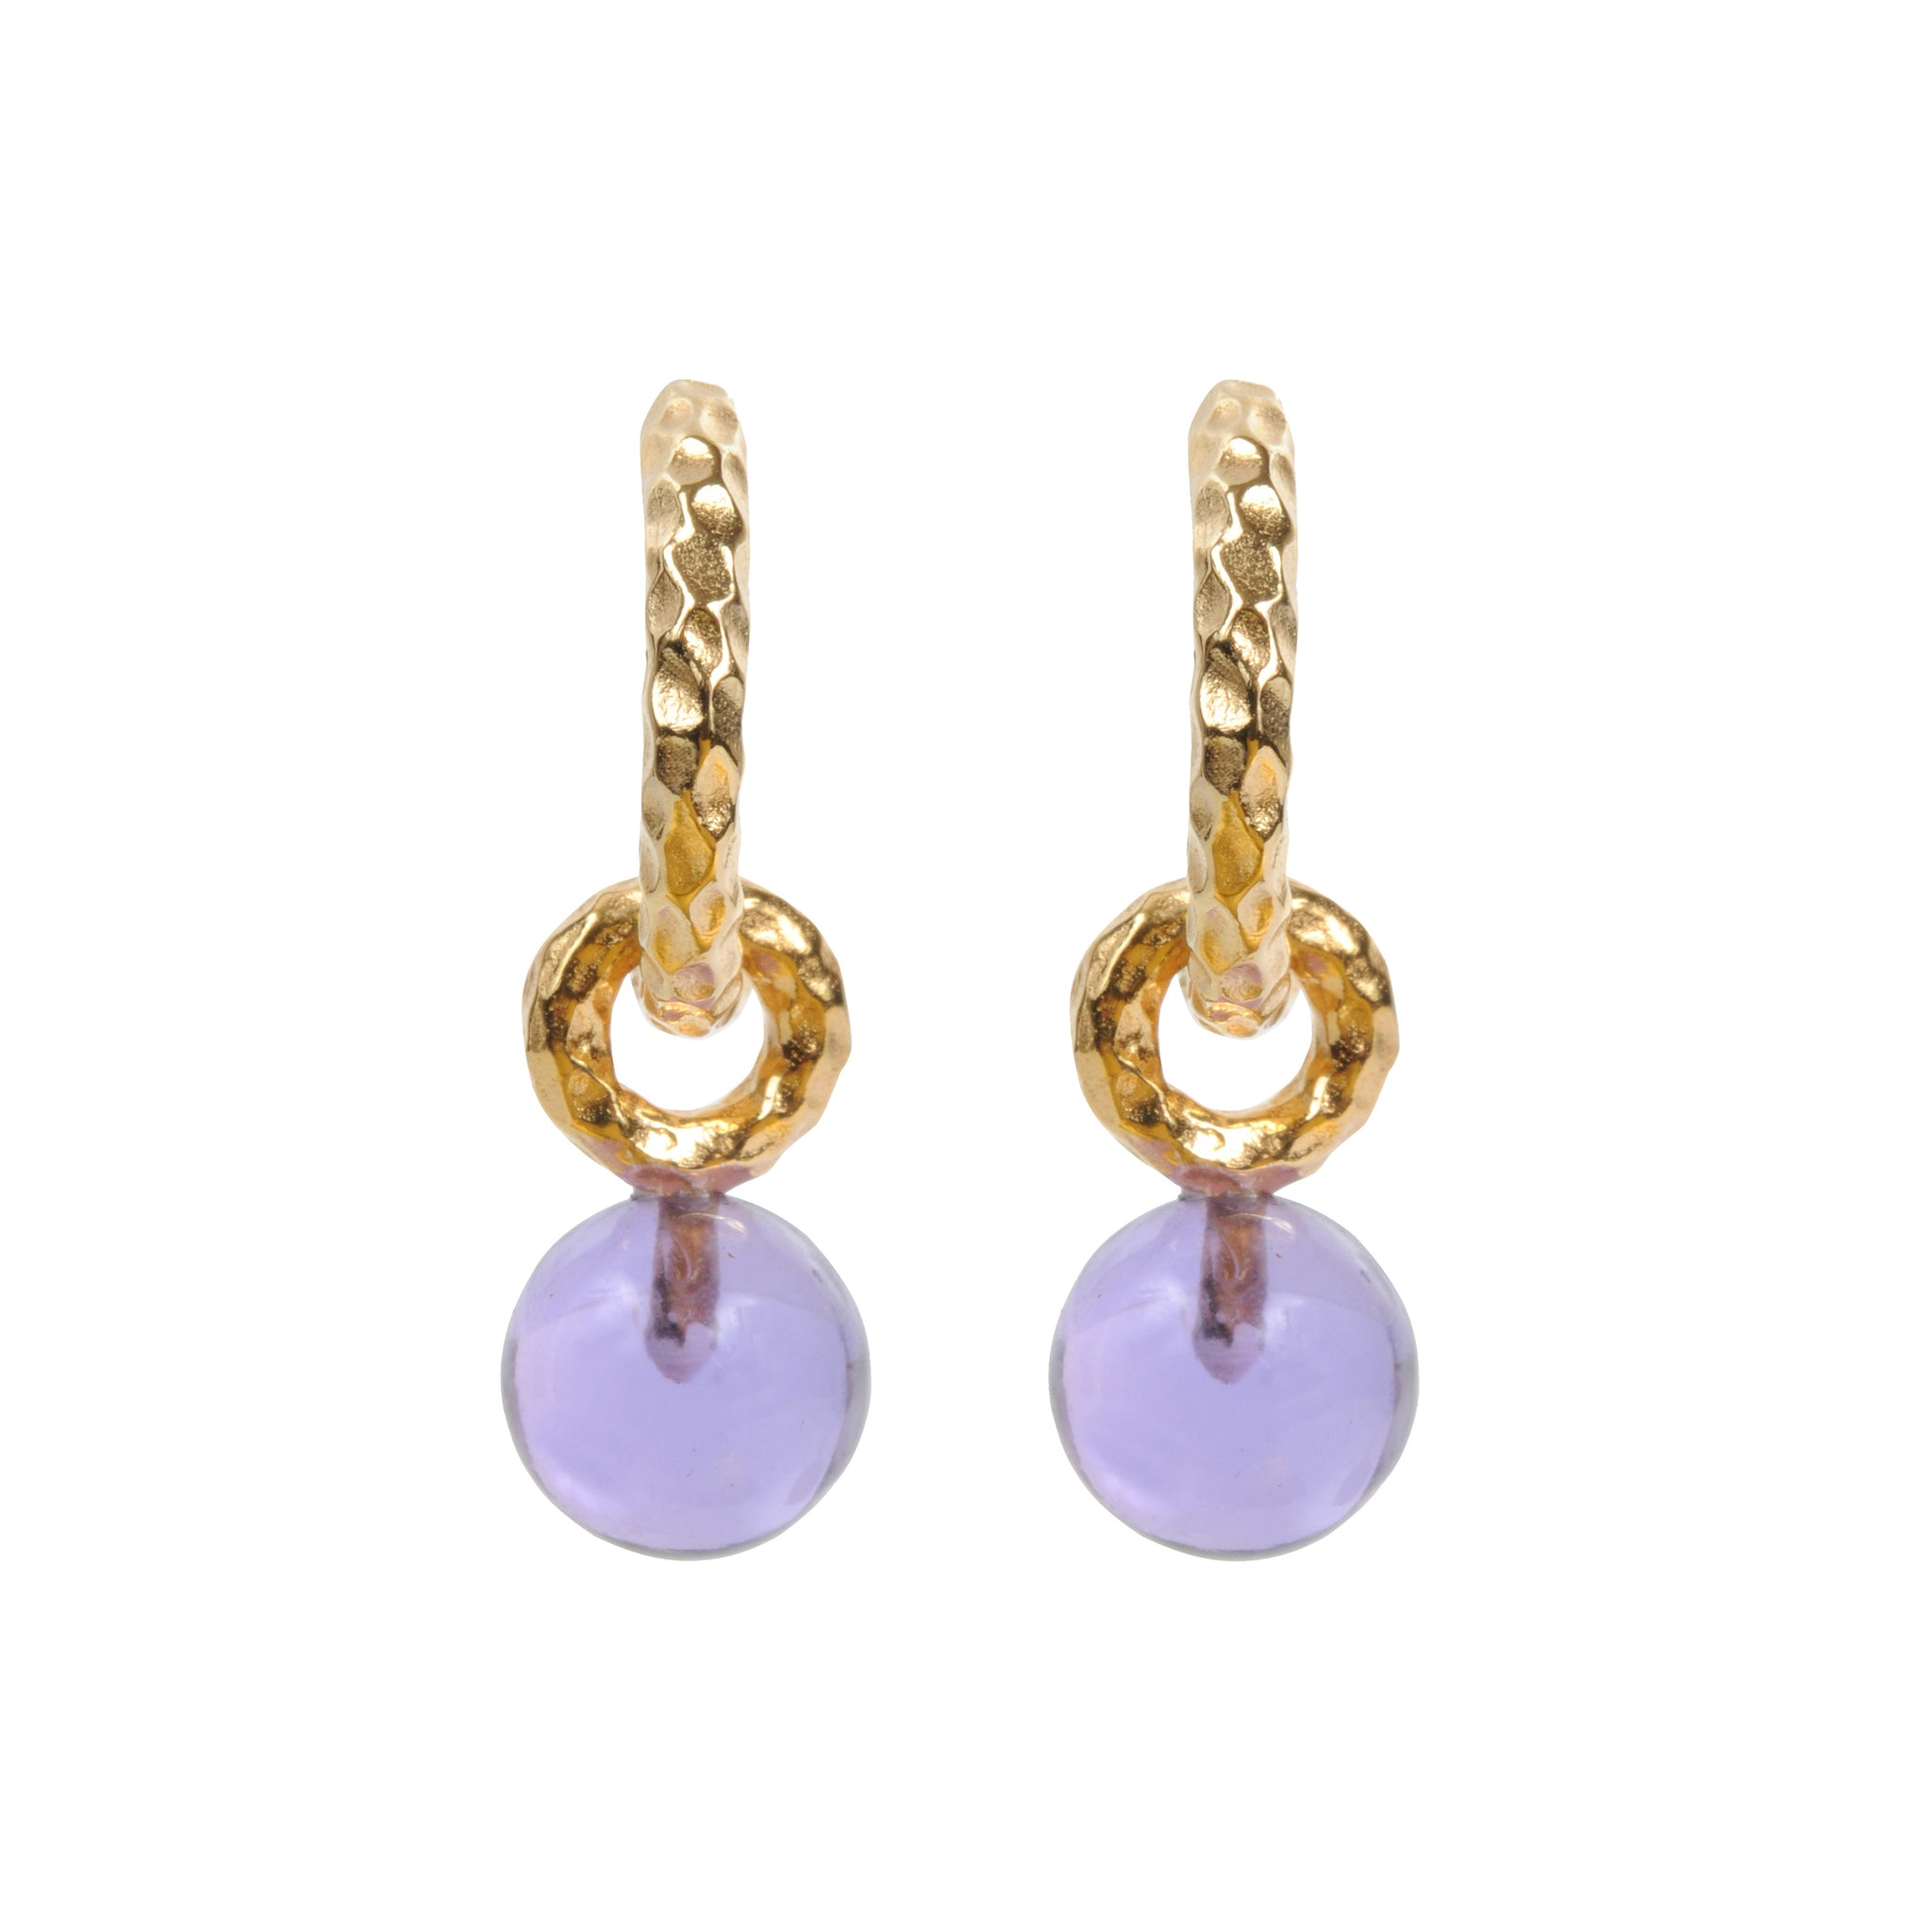 DAVINA COMBE - HUGGIE HOOPS AND AMETHYST PENDANTS